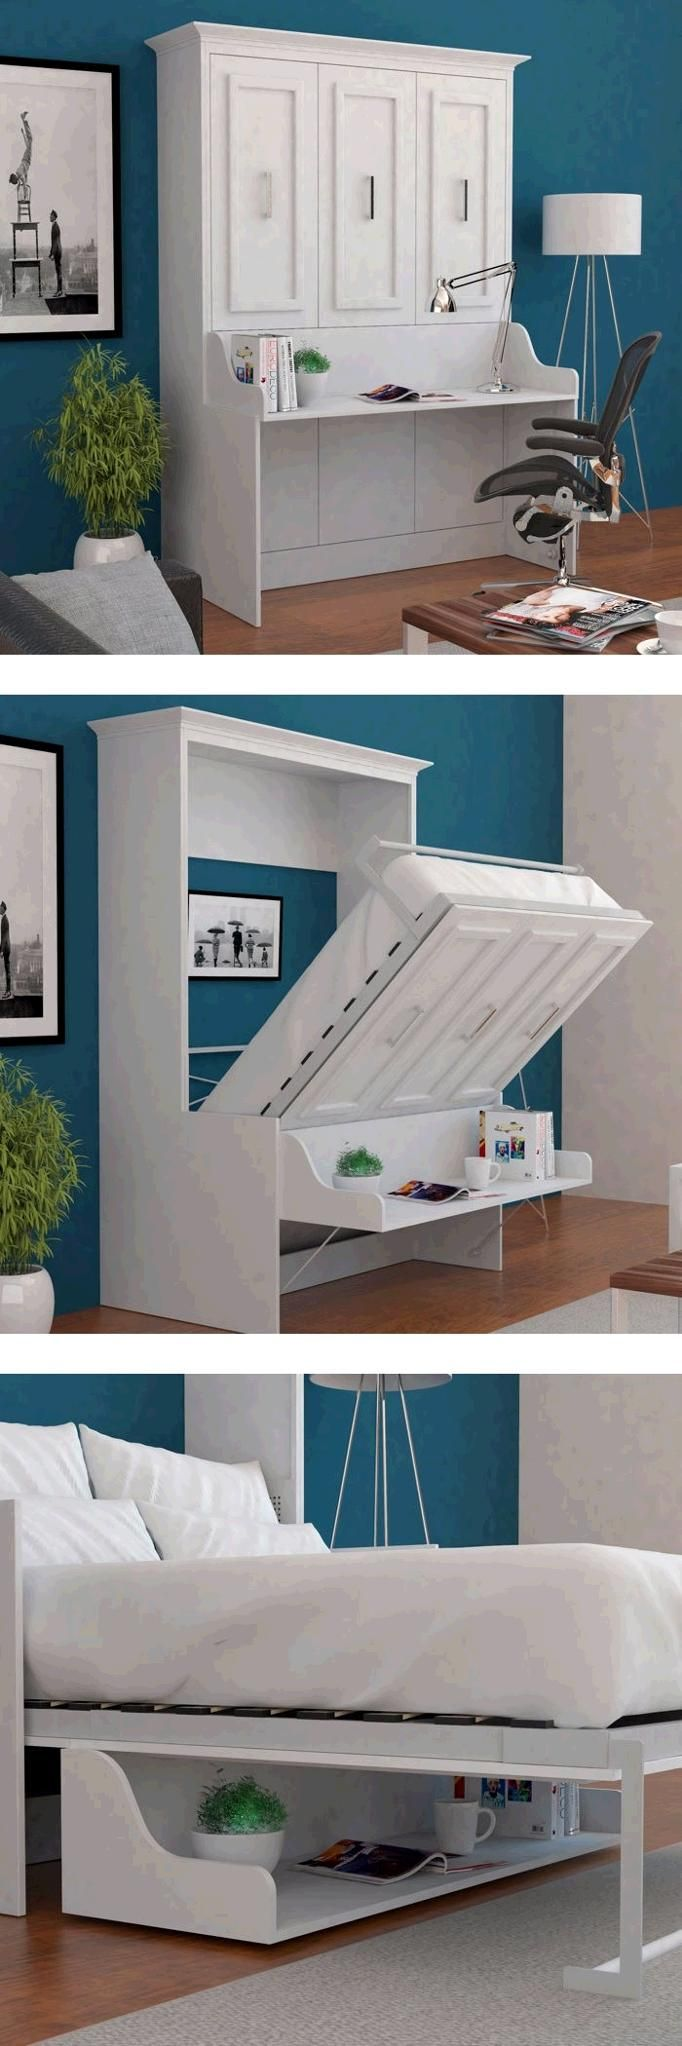 tiny unique desk home office. the porter full wall bed with a desk built in is truly unique and versatile piece transform your home office into room that available ready for tiny